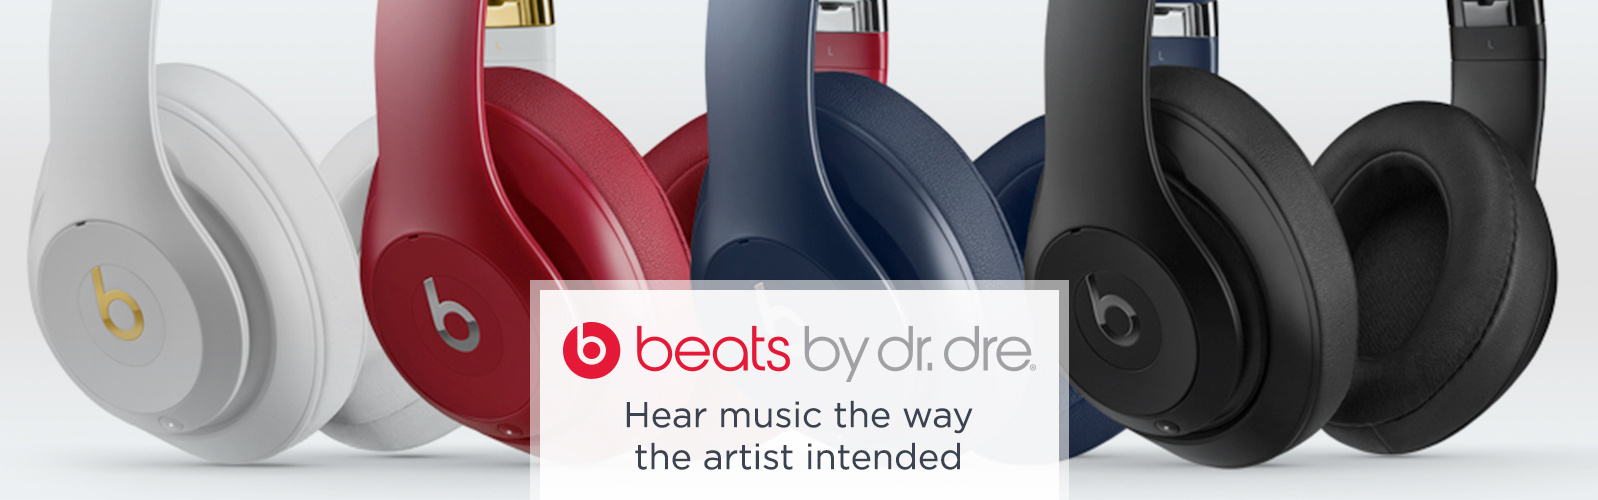 Beats — Hear music the way the artist intended